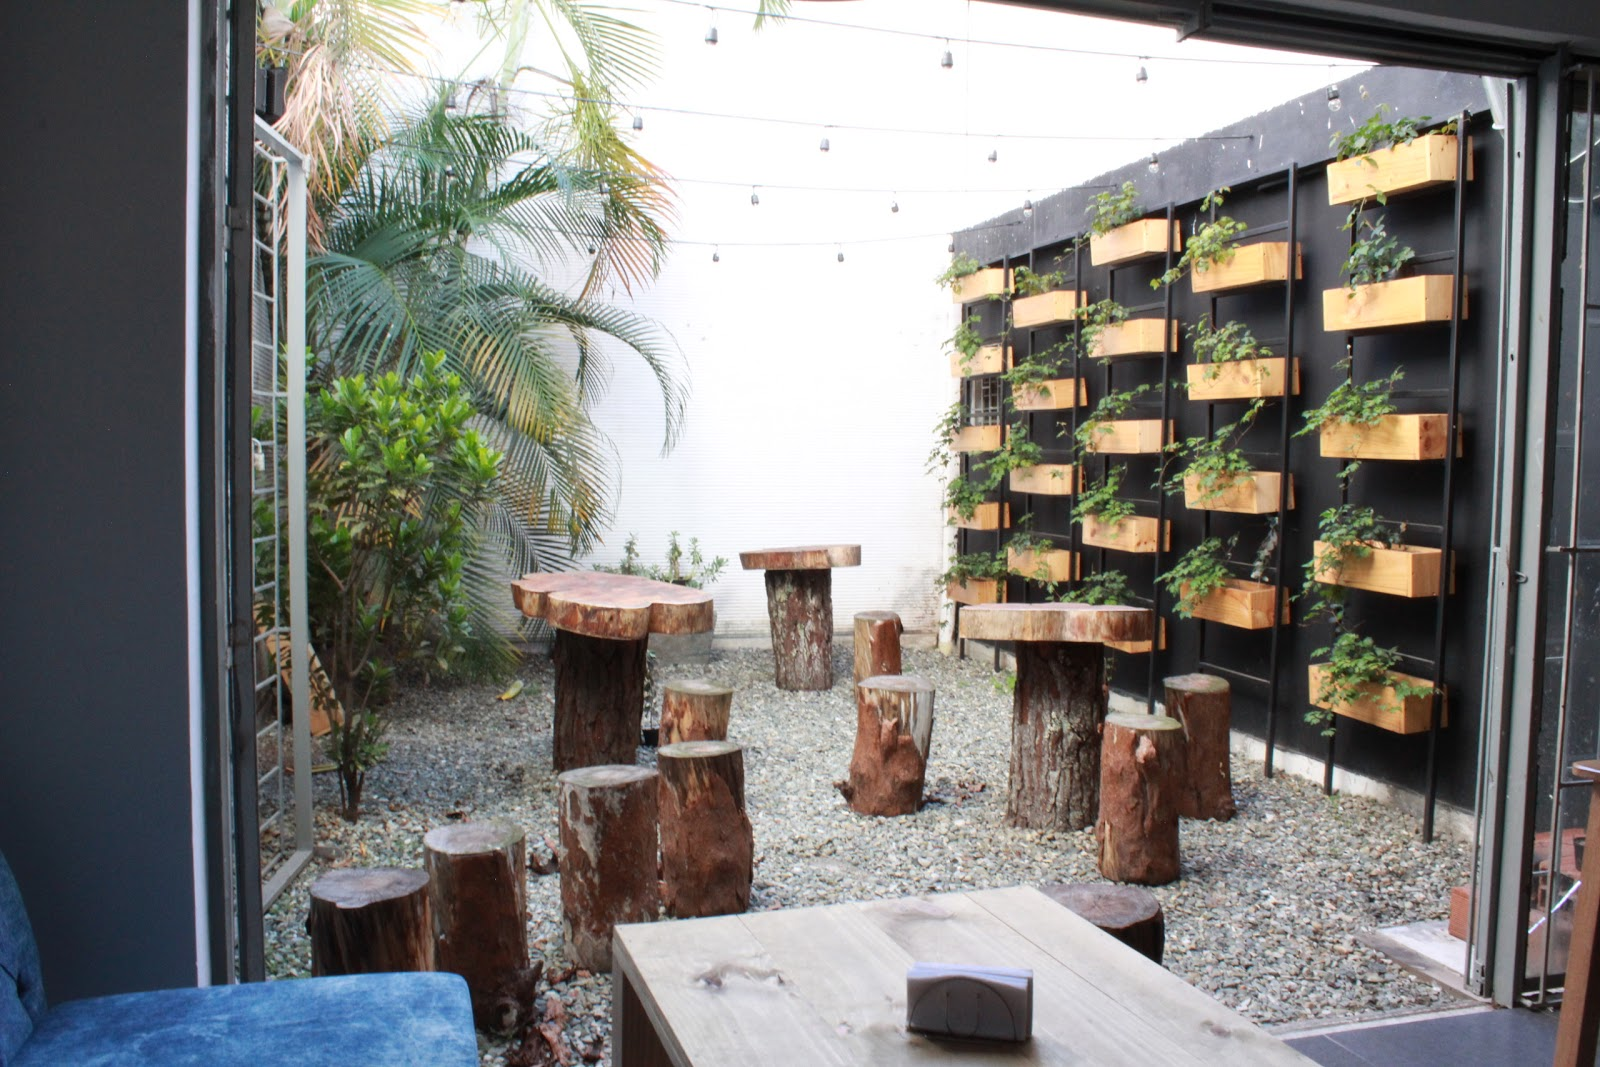 Convite Bar y Parrilla: A Work-Friendly Place in Medellin